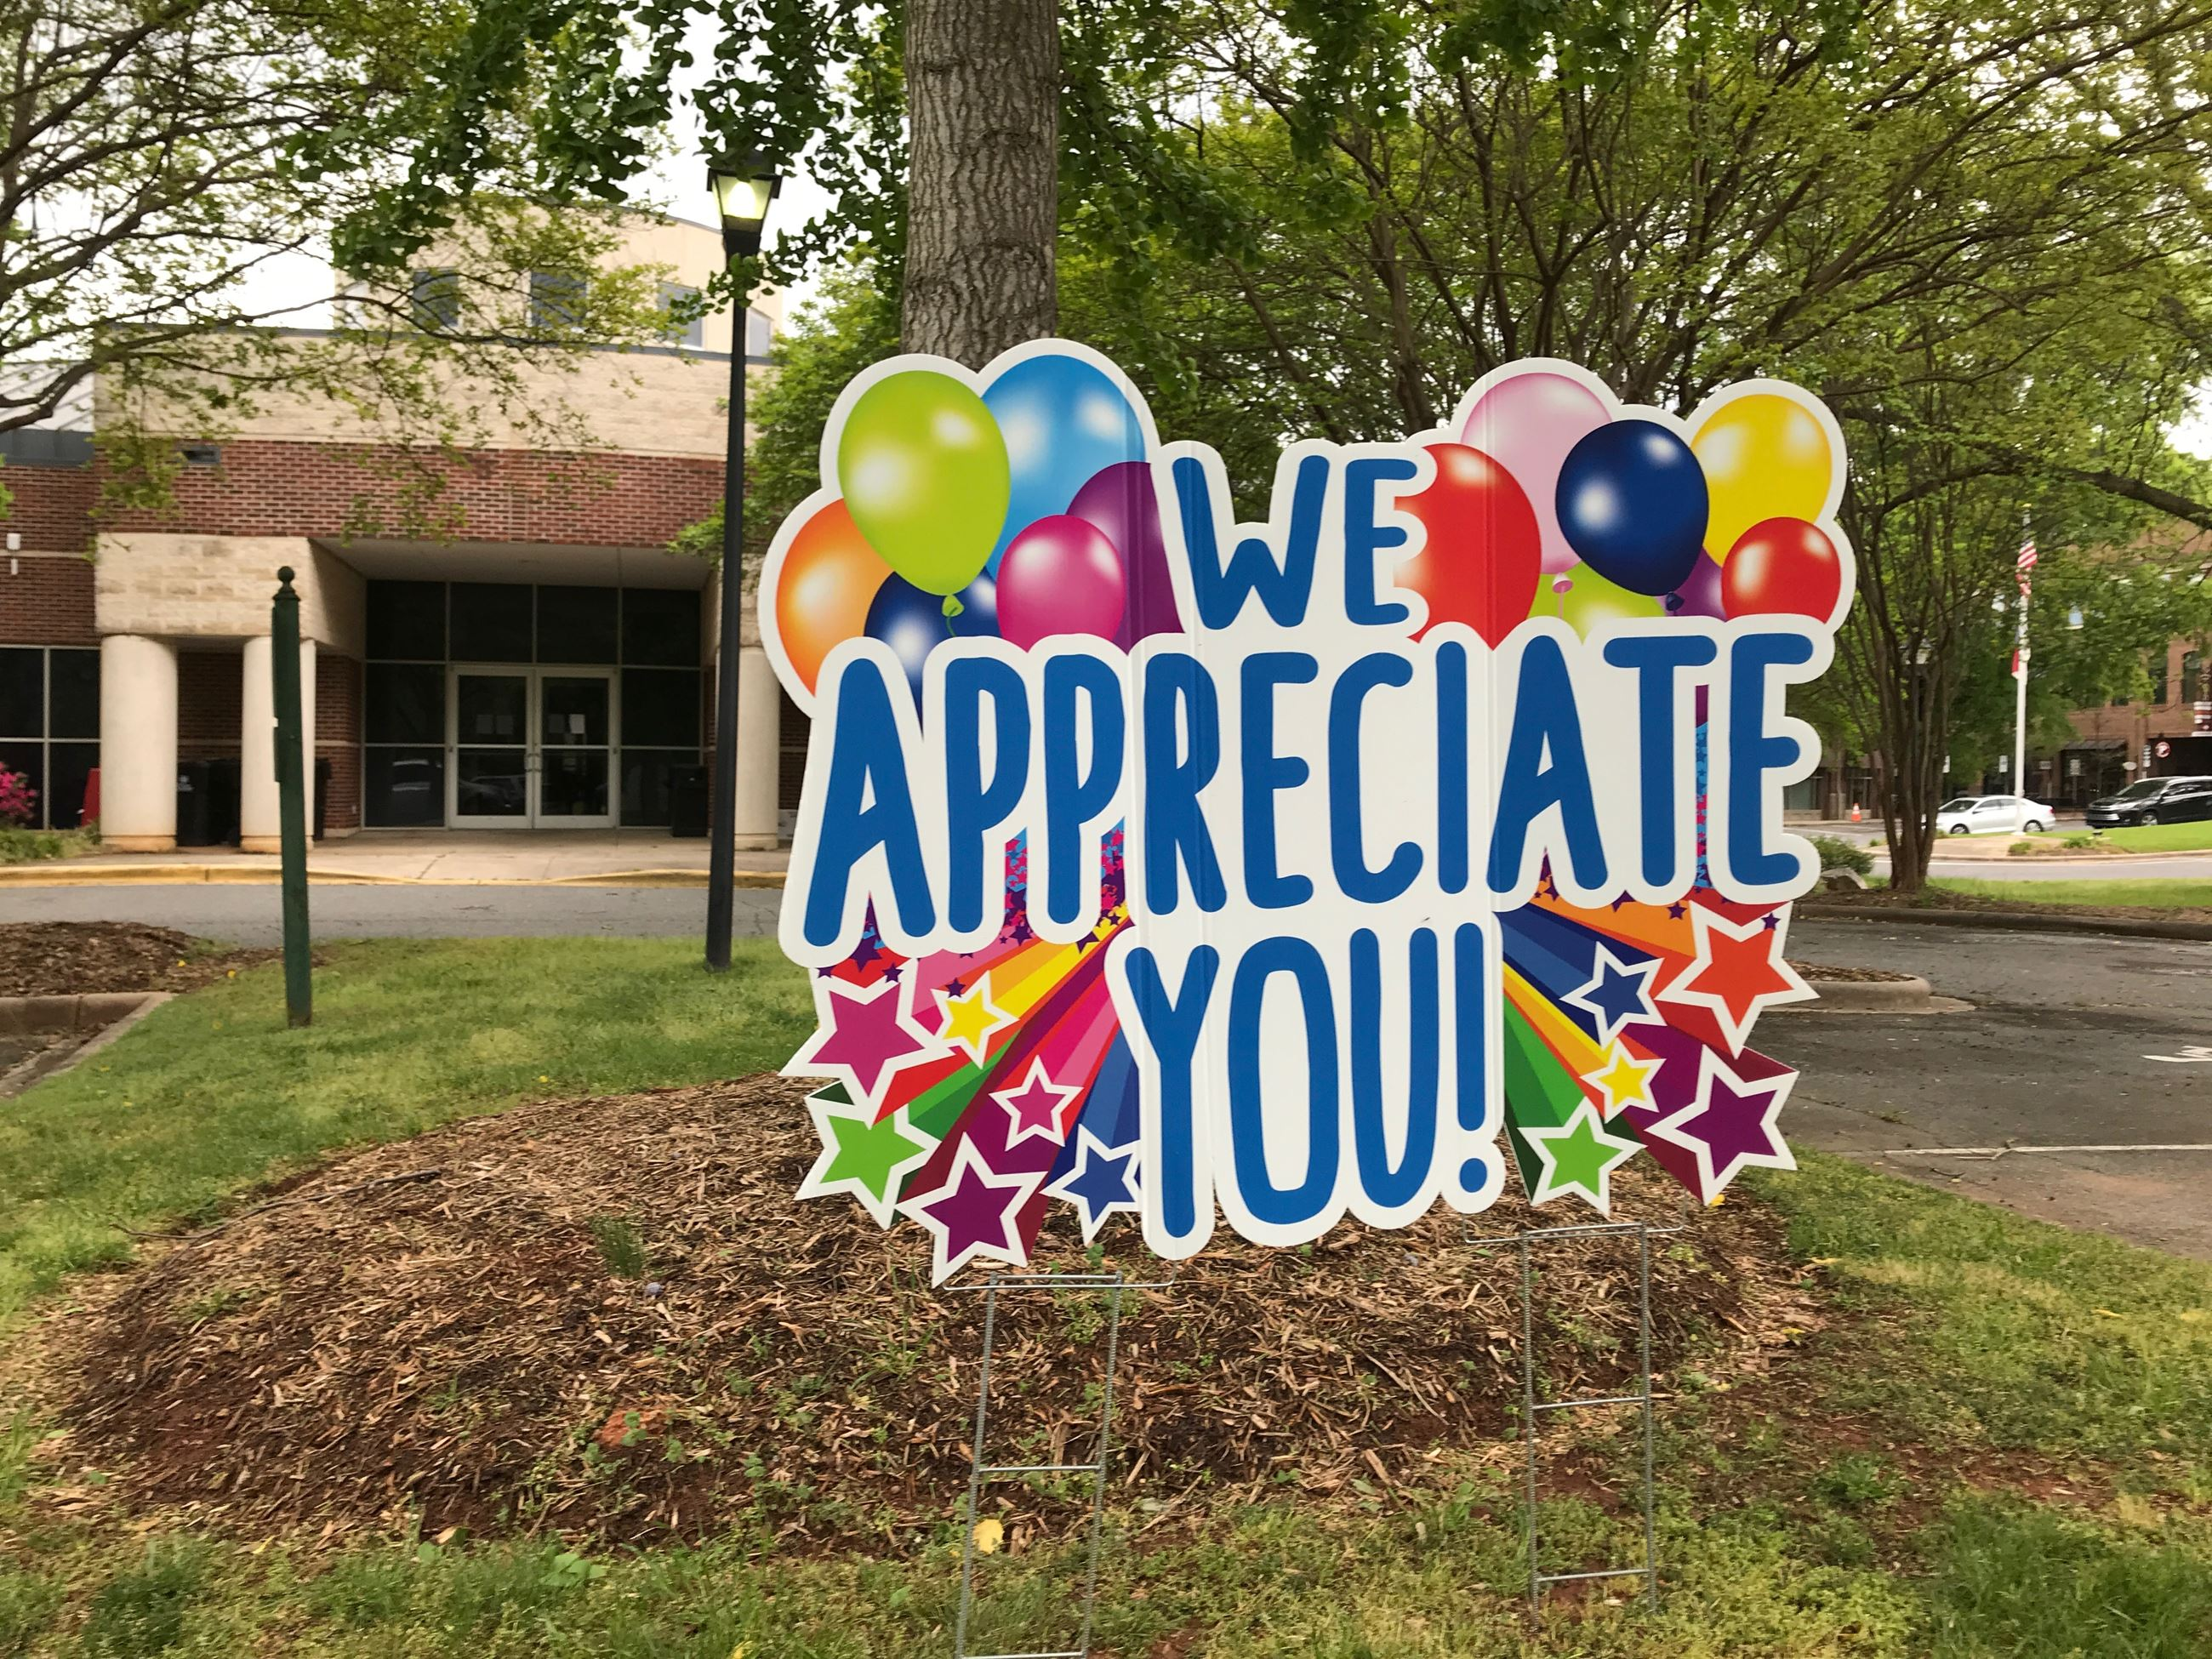 Appreciation Sign at Town Hall